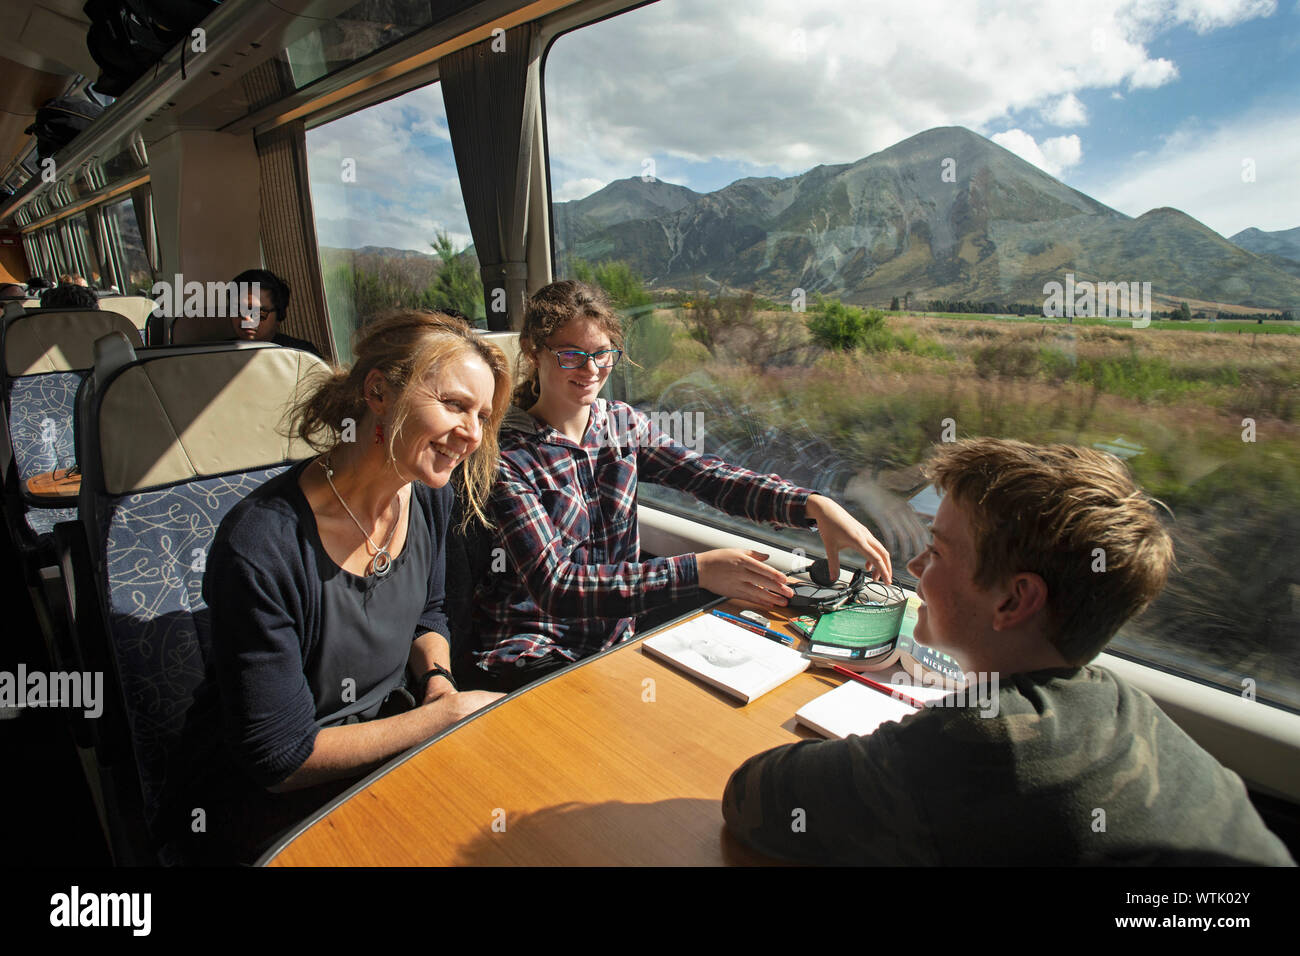 Picture by Tim Cuff - 4 January 2019 - Tranz Alpine train journey from Greymouth to Christchurch, New Zealand: a family enjoying the journey Stock Photo